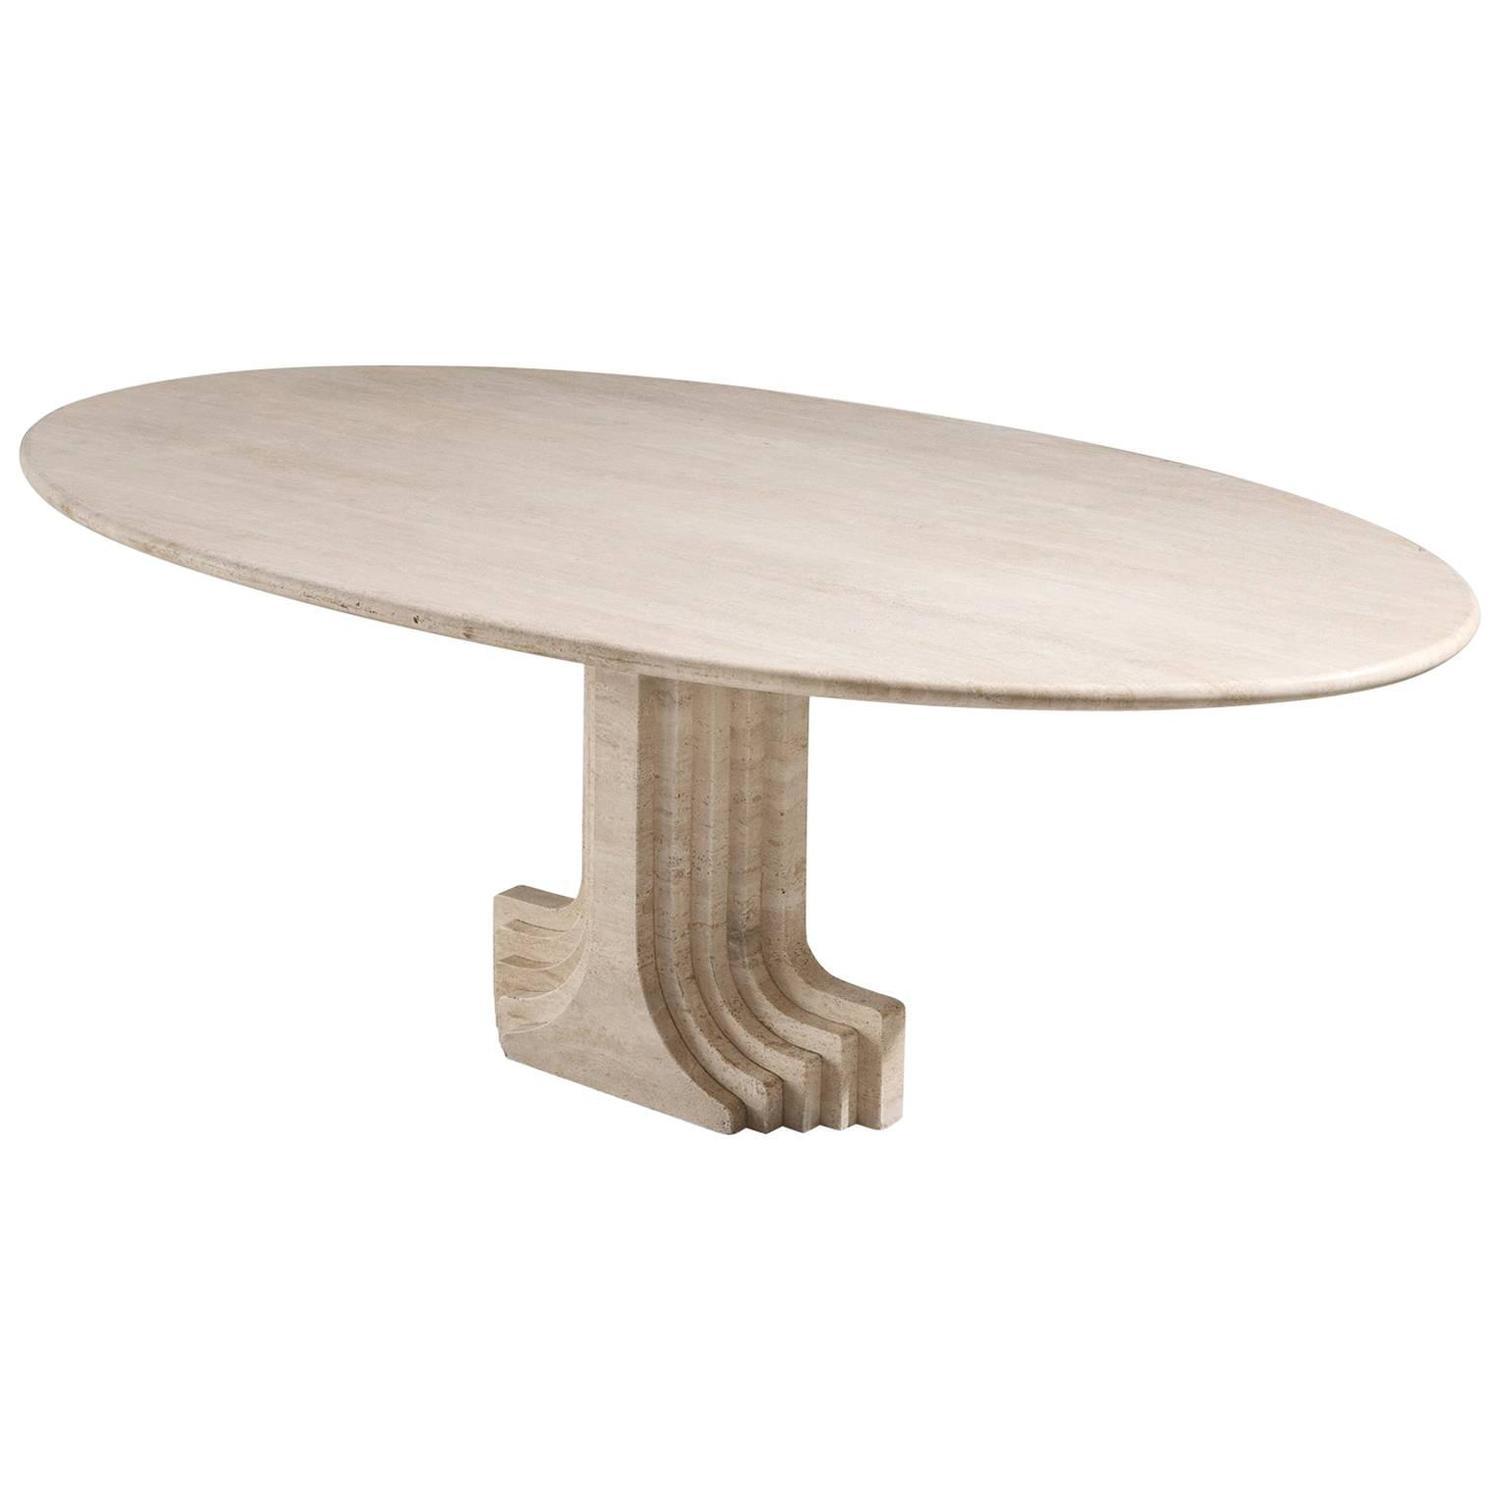 Italian Travertine Marble Octagonal Dining Table by Roche Bobois